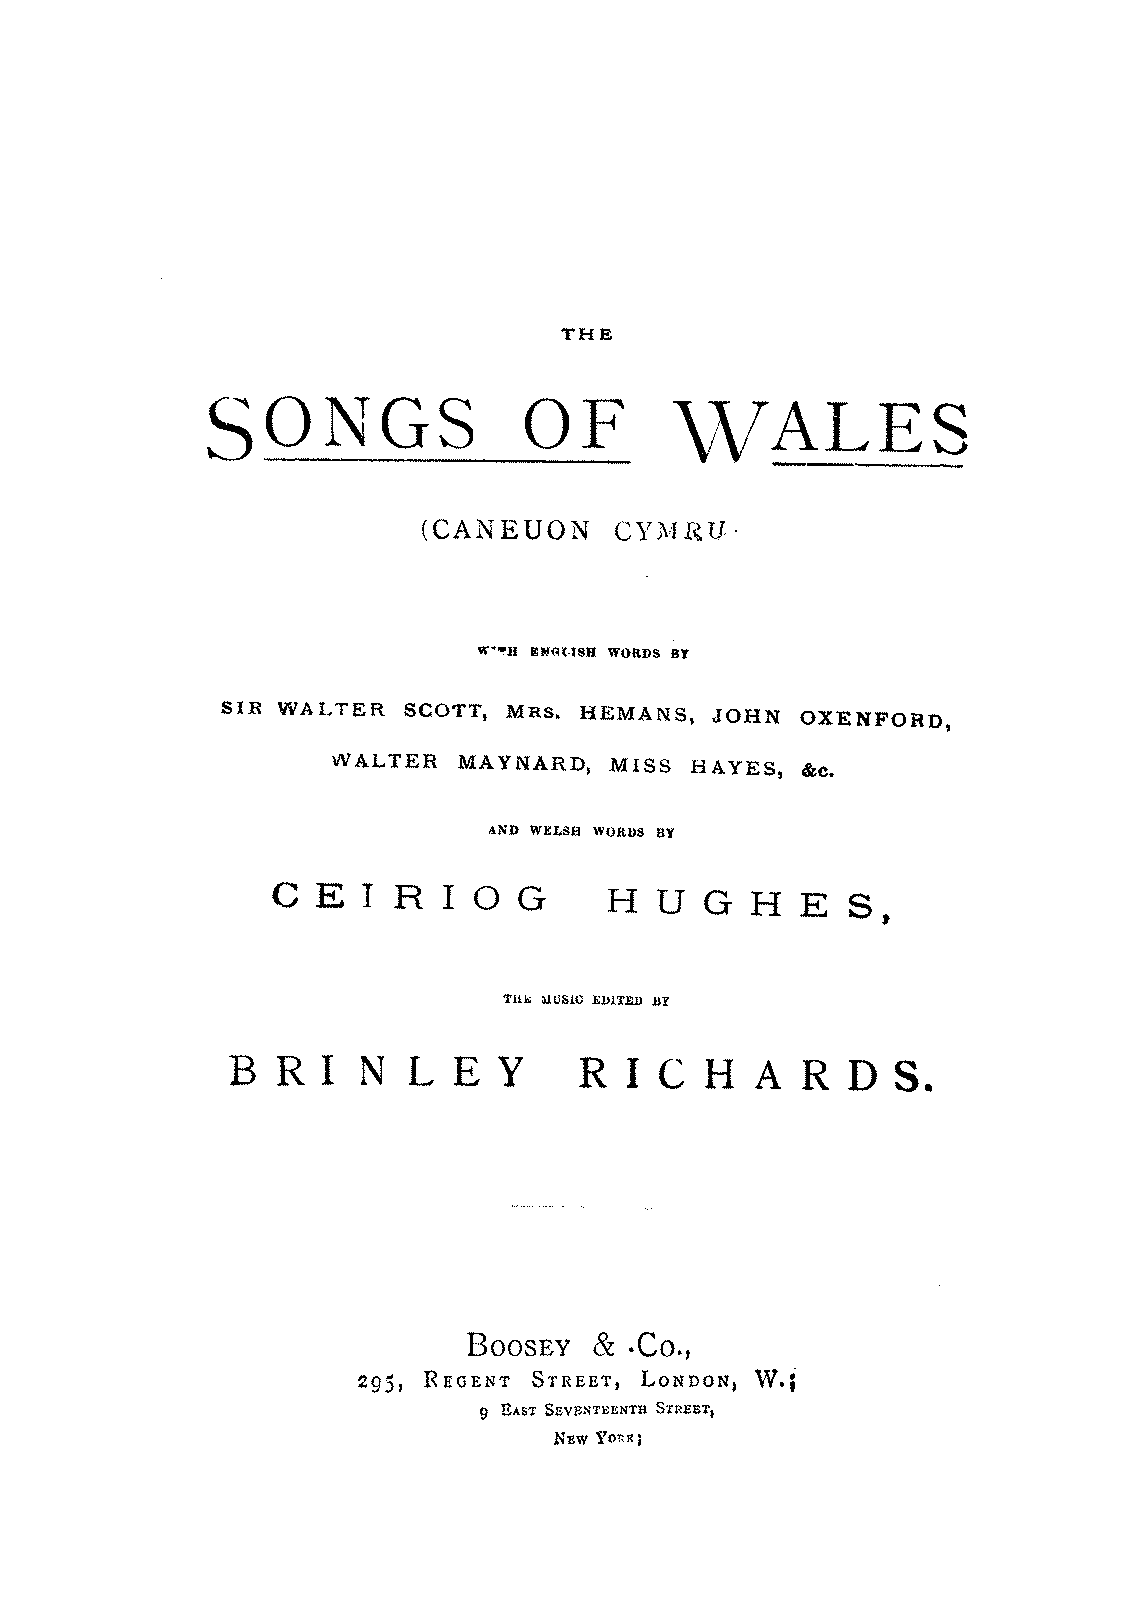 The Songs of Wales Richards Brinley IMSLP Petrucci Music